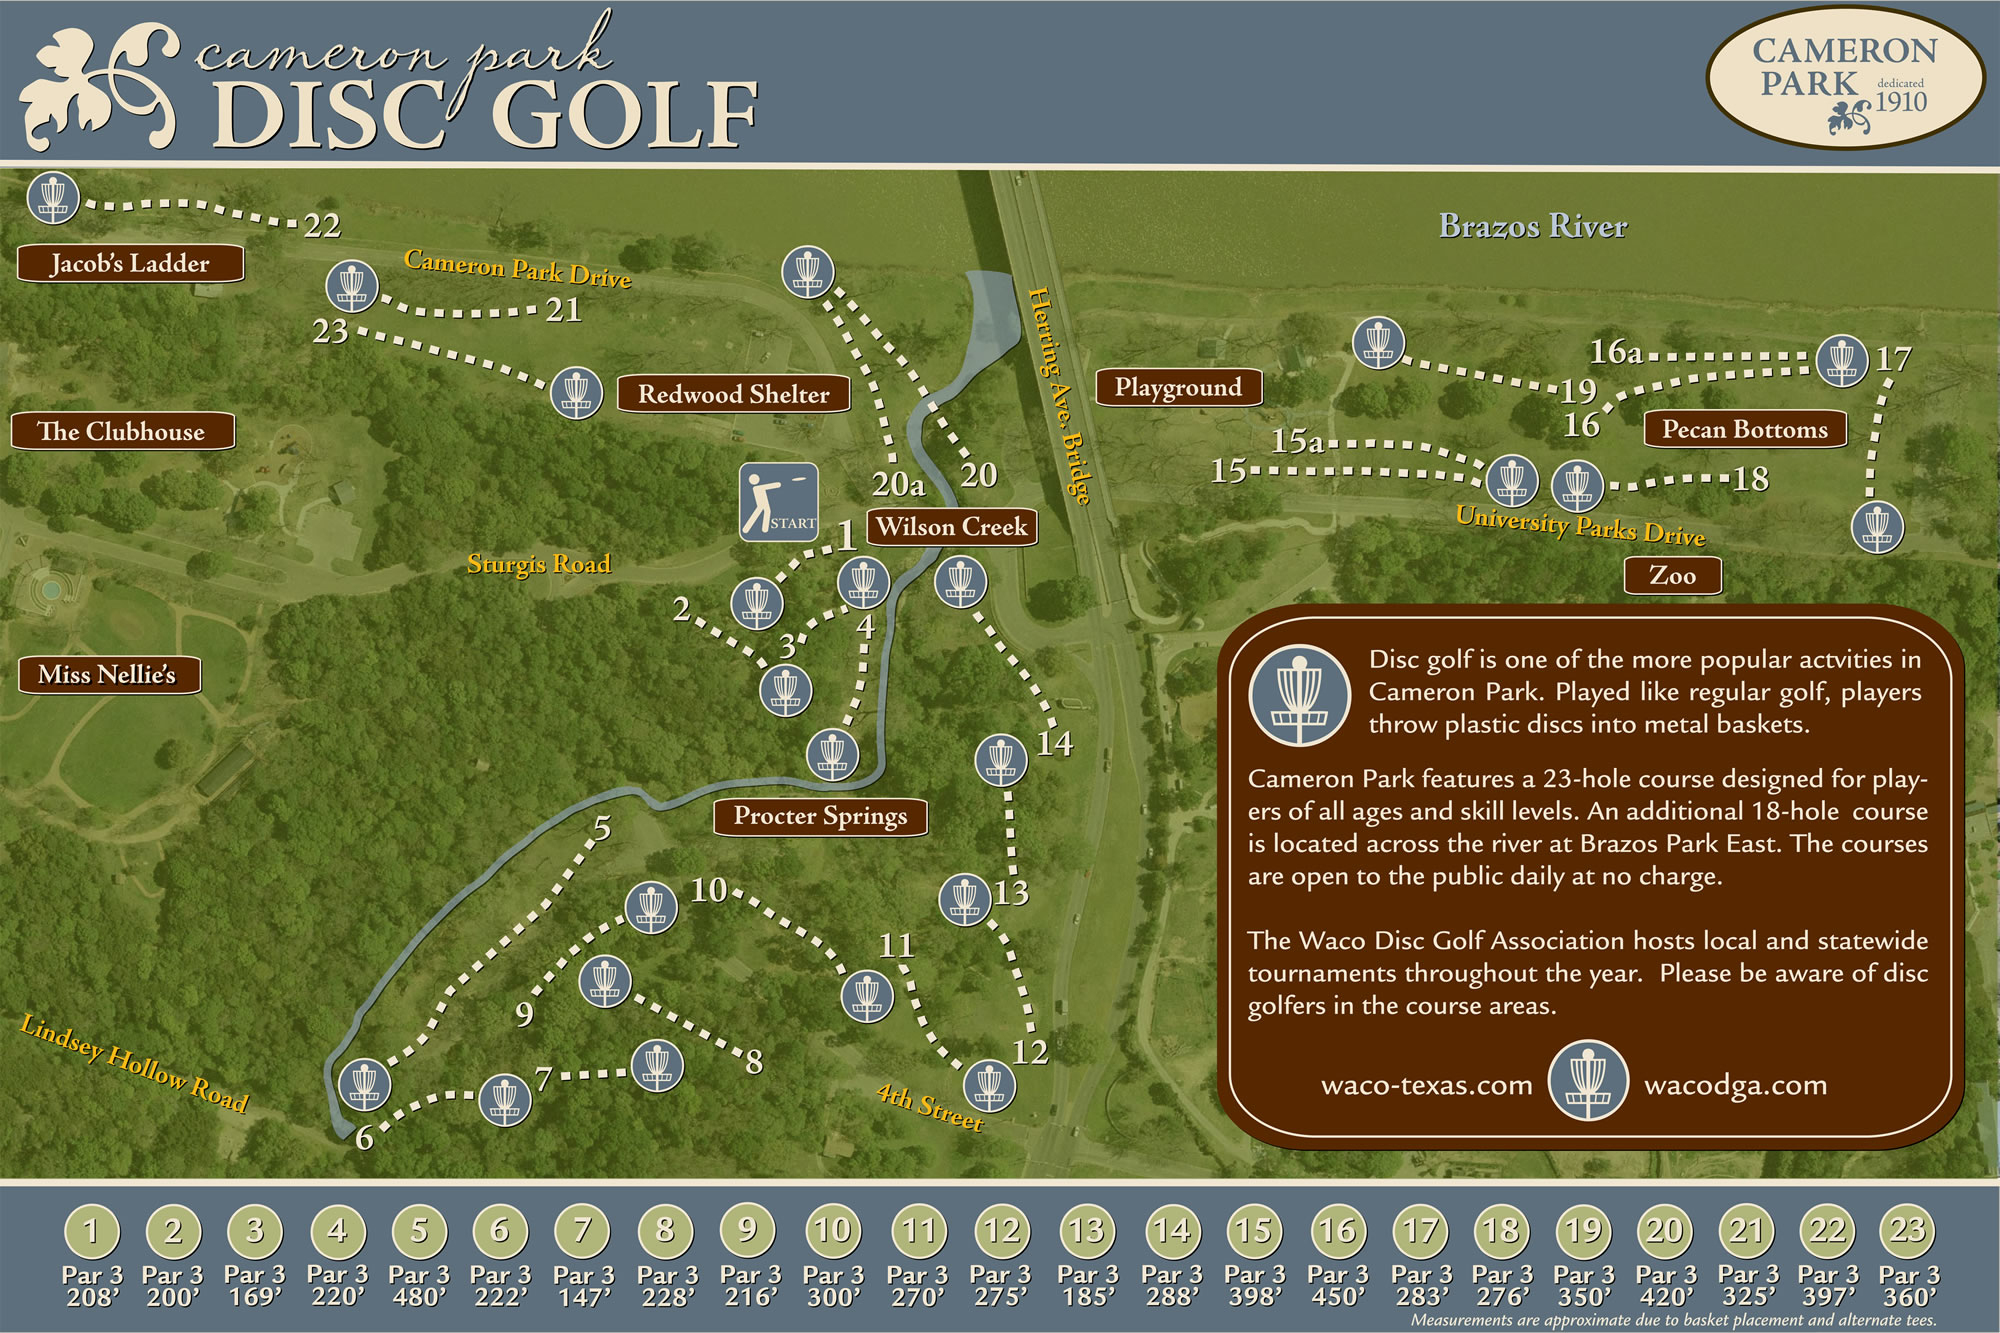 William Cameron Park In Waco, Tx - Disc Golf Course Review - Texas Golf Courses Map